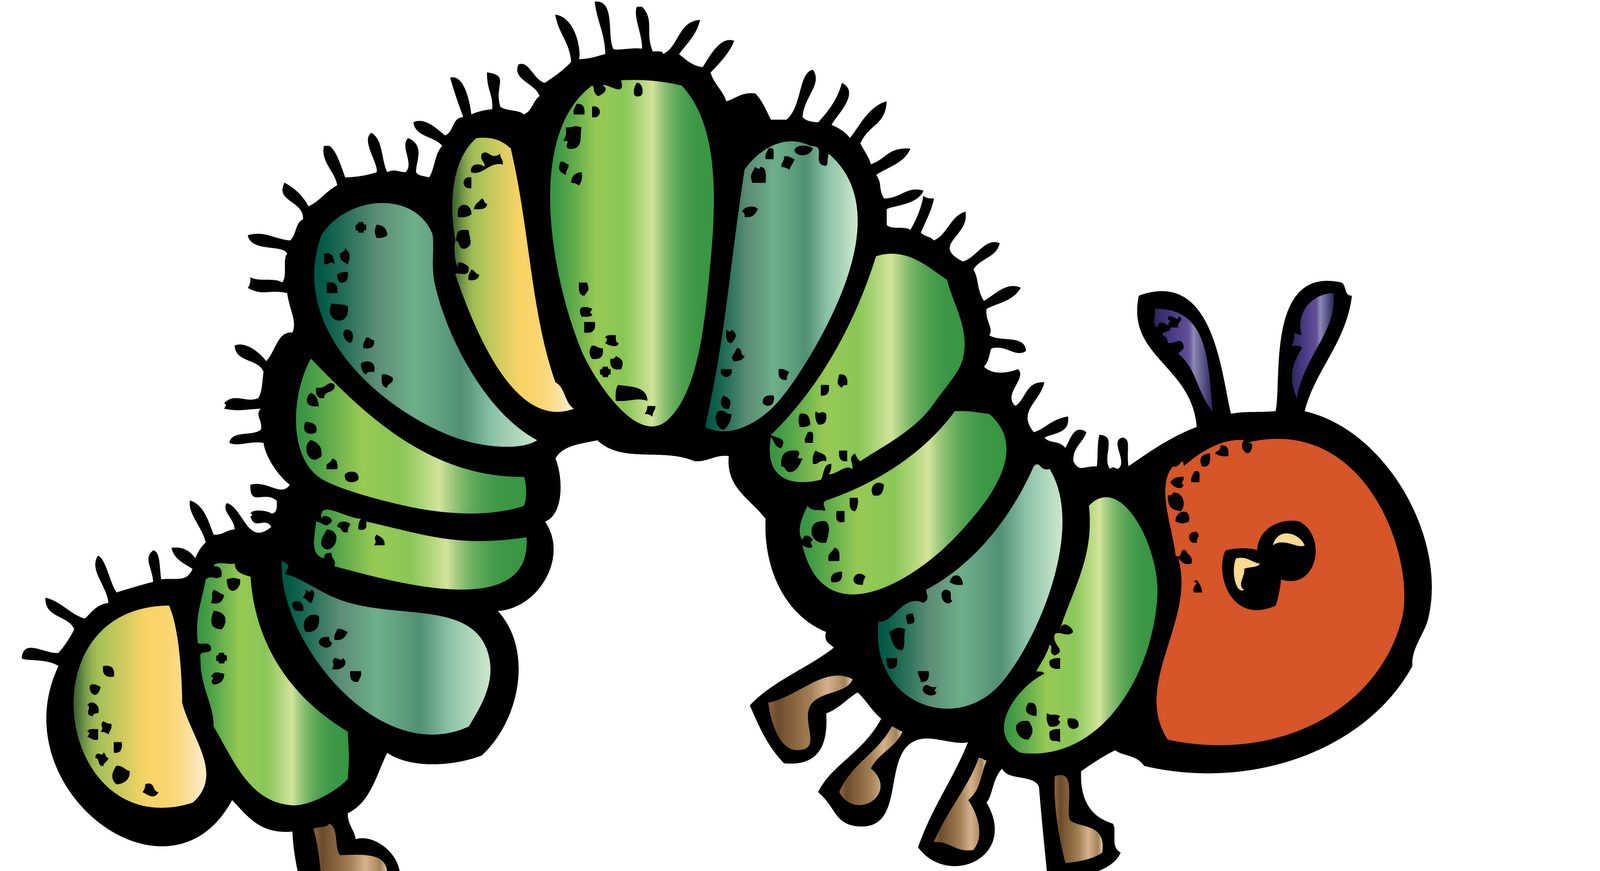 Worm clipart garden. Caterpillar group with items